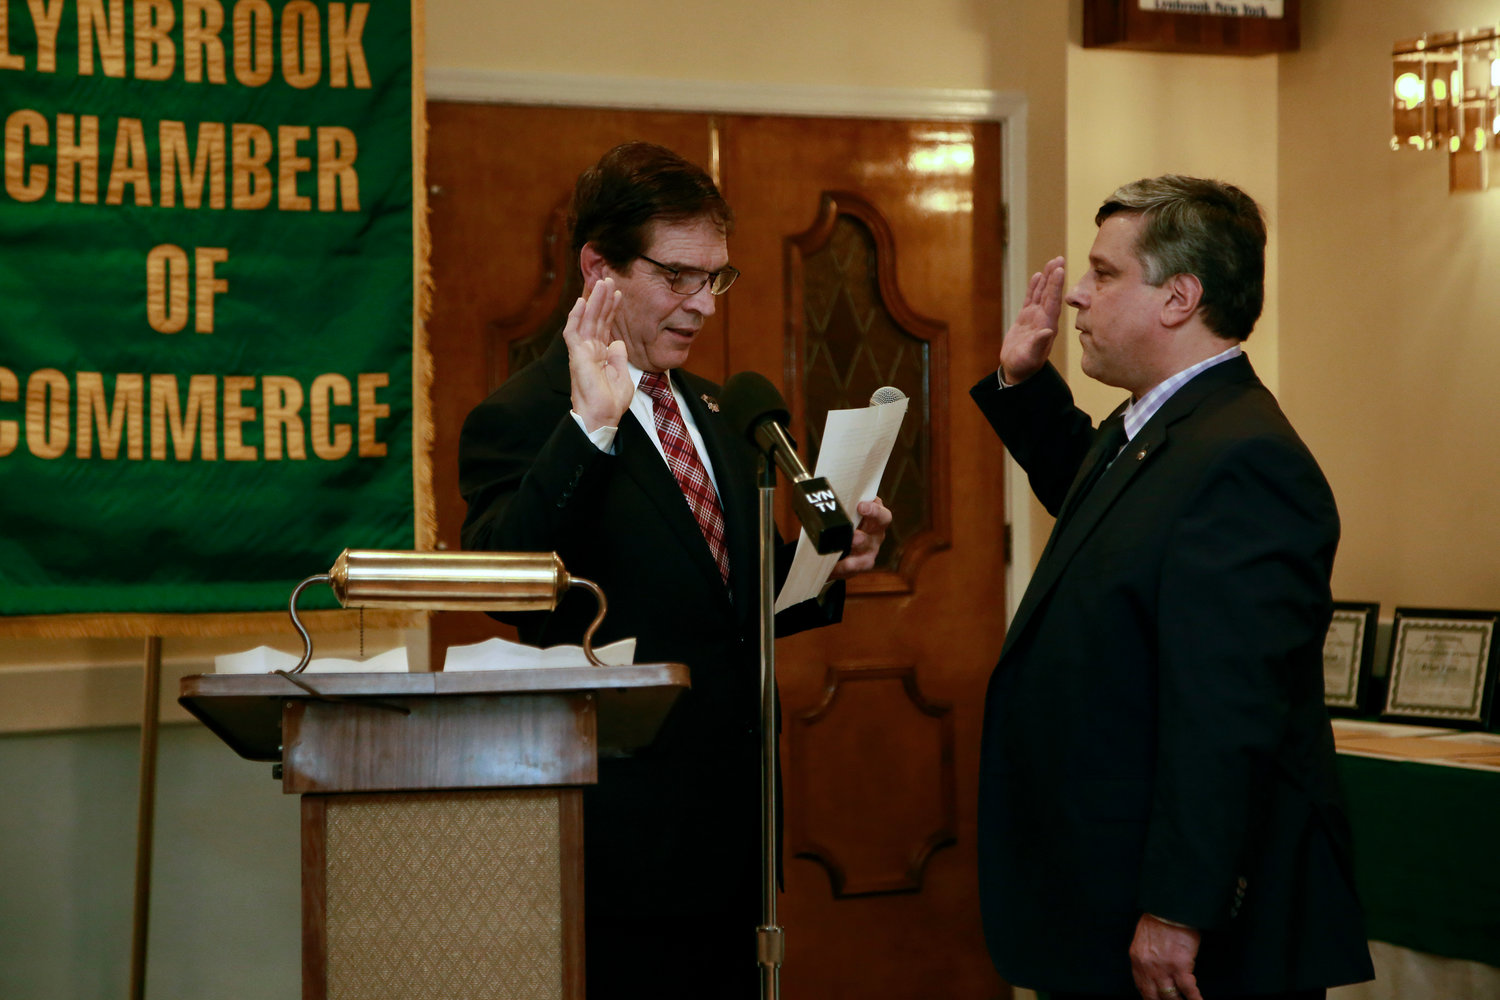 Stephen Wangel, right, was sworn in as president by Lynbrook Mayor Alan Beach.